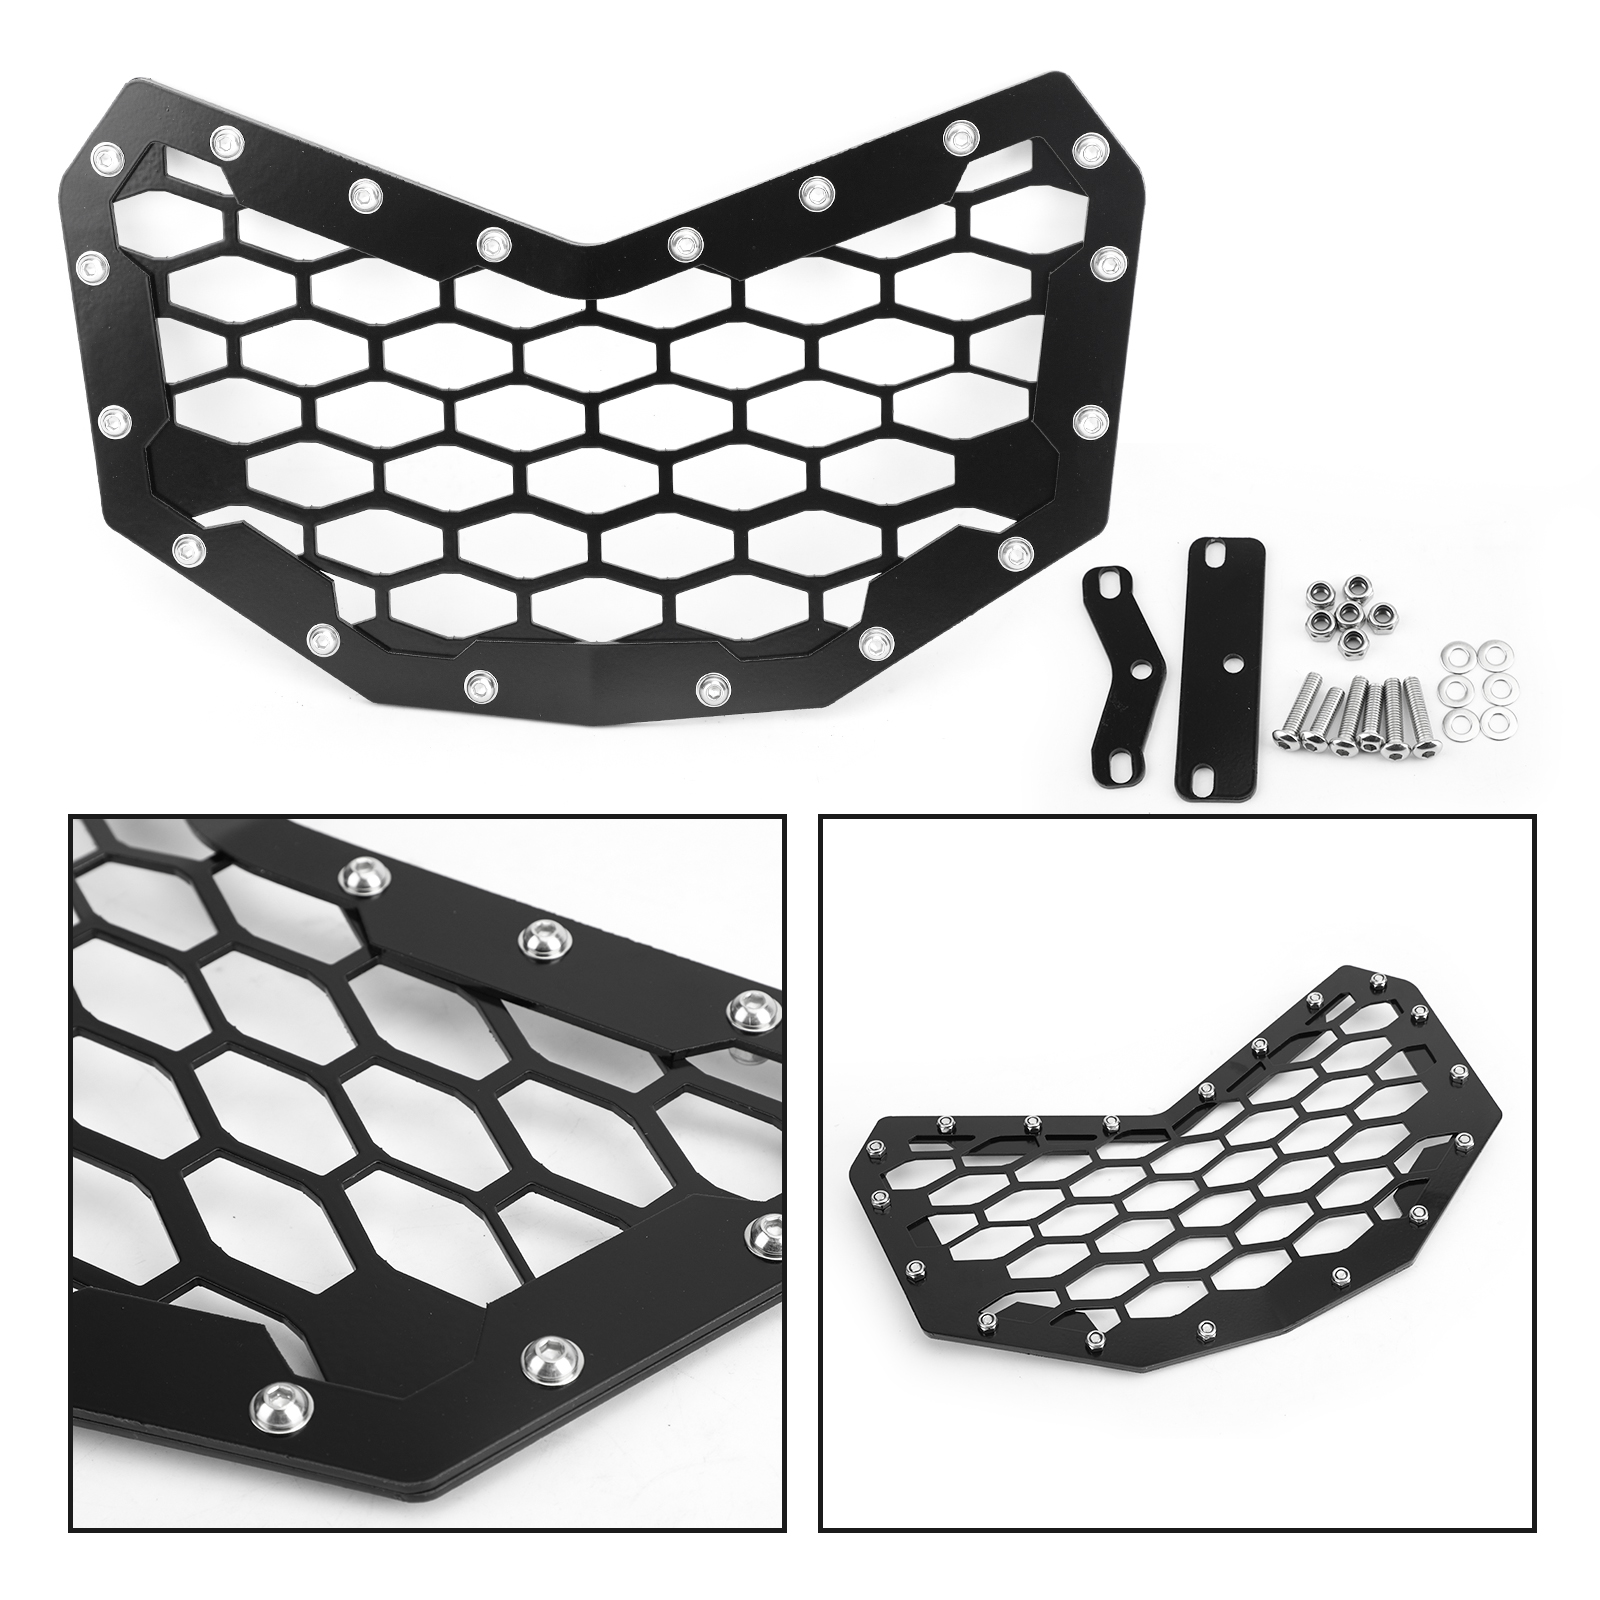 Artudatech For Can-Am Maverick 900 X3T 2016 2017 2018 2019 New Black Front Grille Light Grill Motorcycle ATV Accessories Parts image